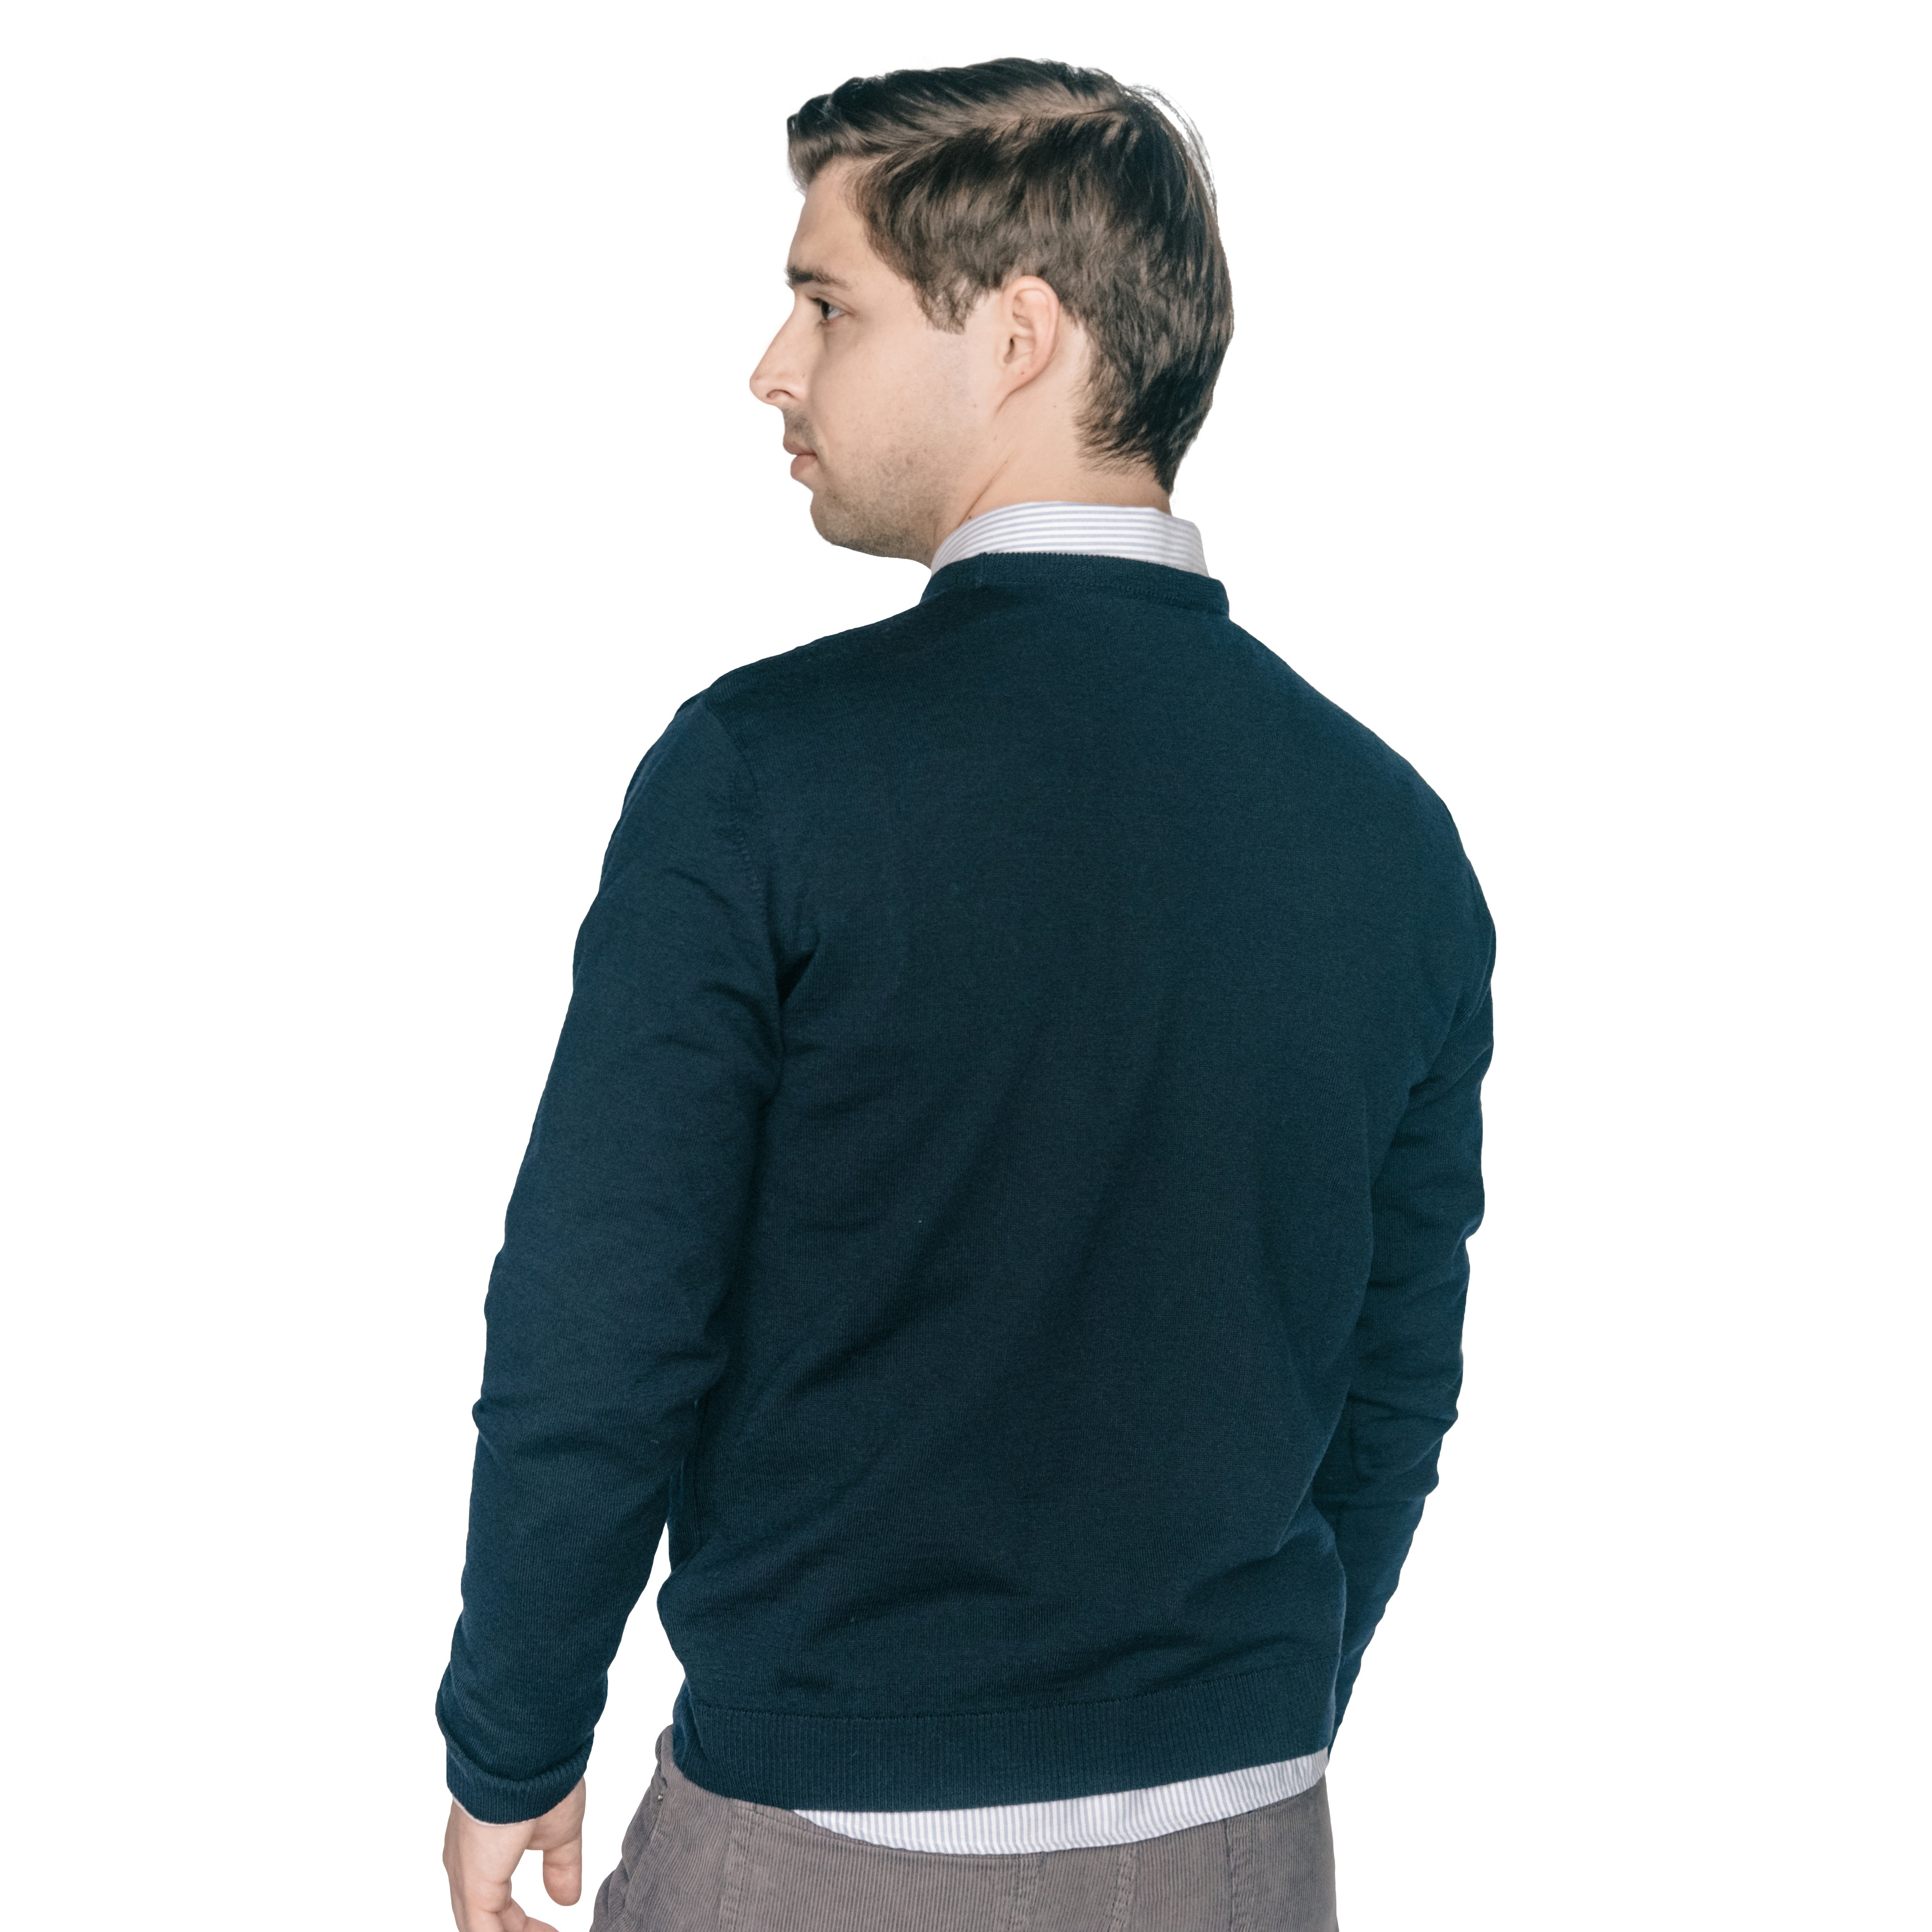 Zegna Merino Wool Crew Neck Sweaters - Navy